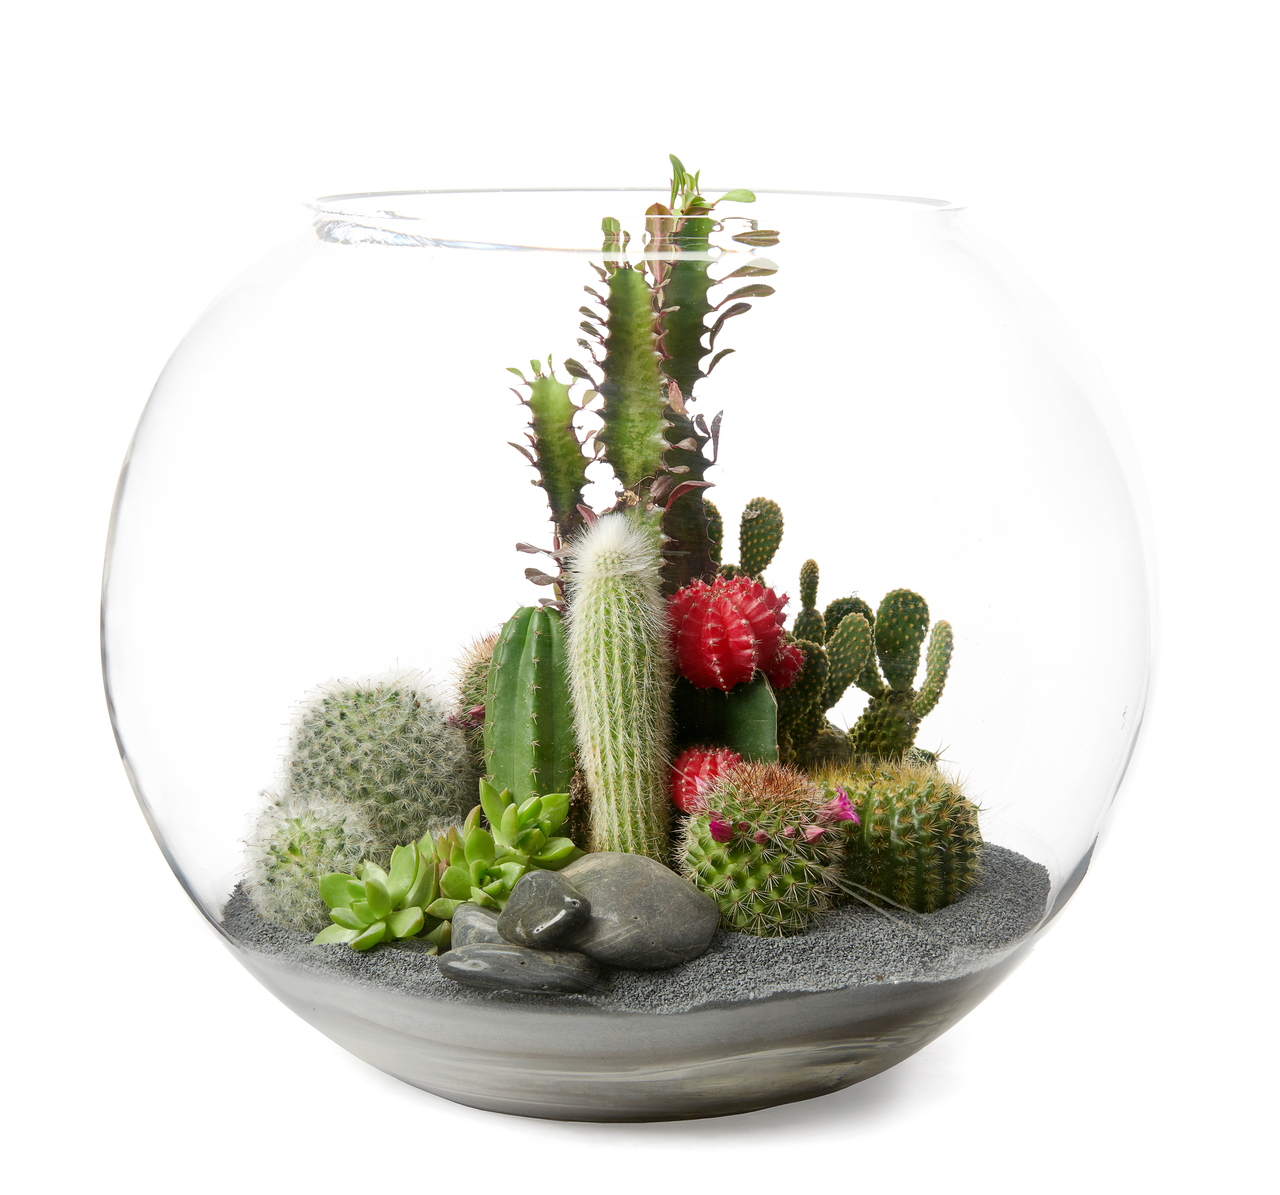 Fishbowl Terrarium Large Black 12 5 H X 15 D Plant The Future